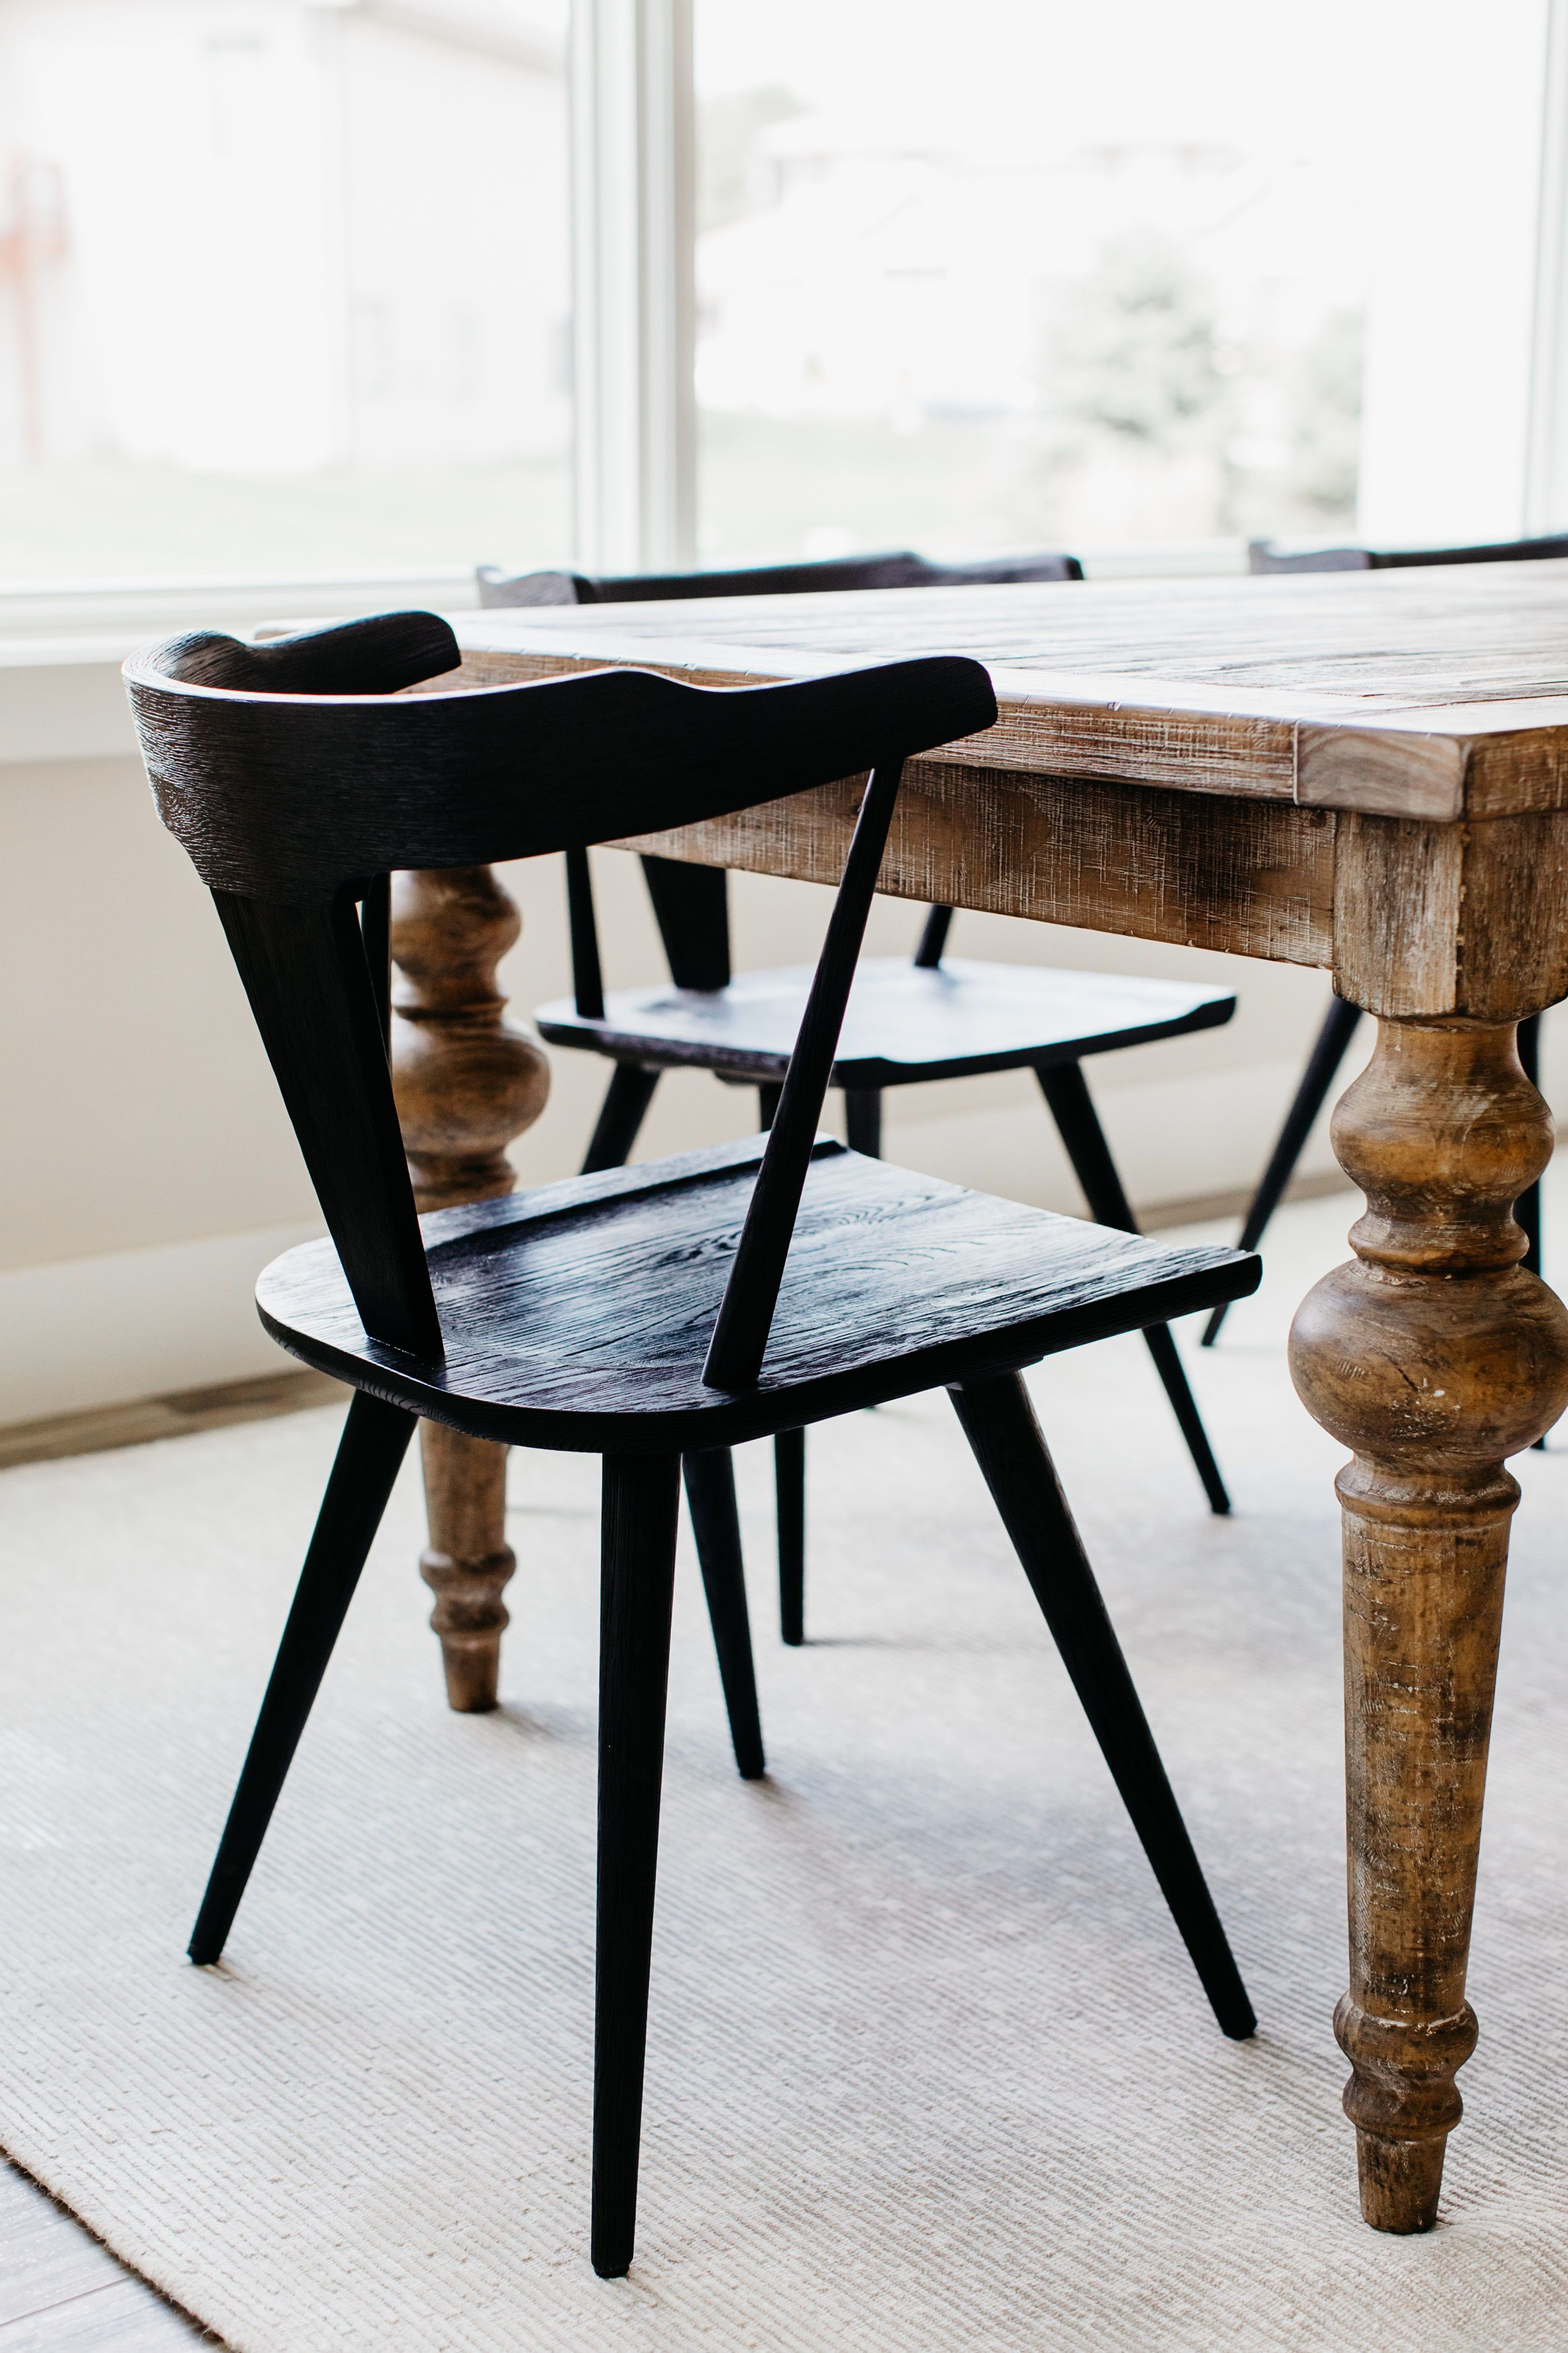 Black wishbone chairs with wooden dining table contrast